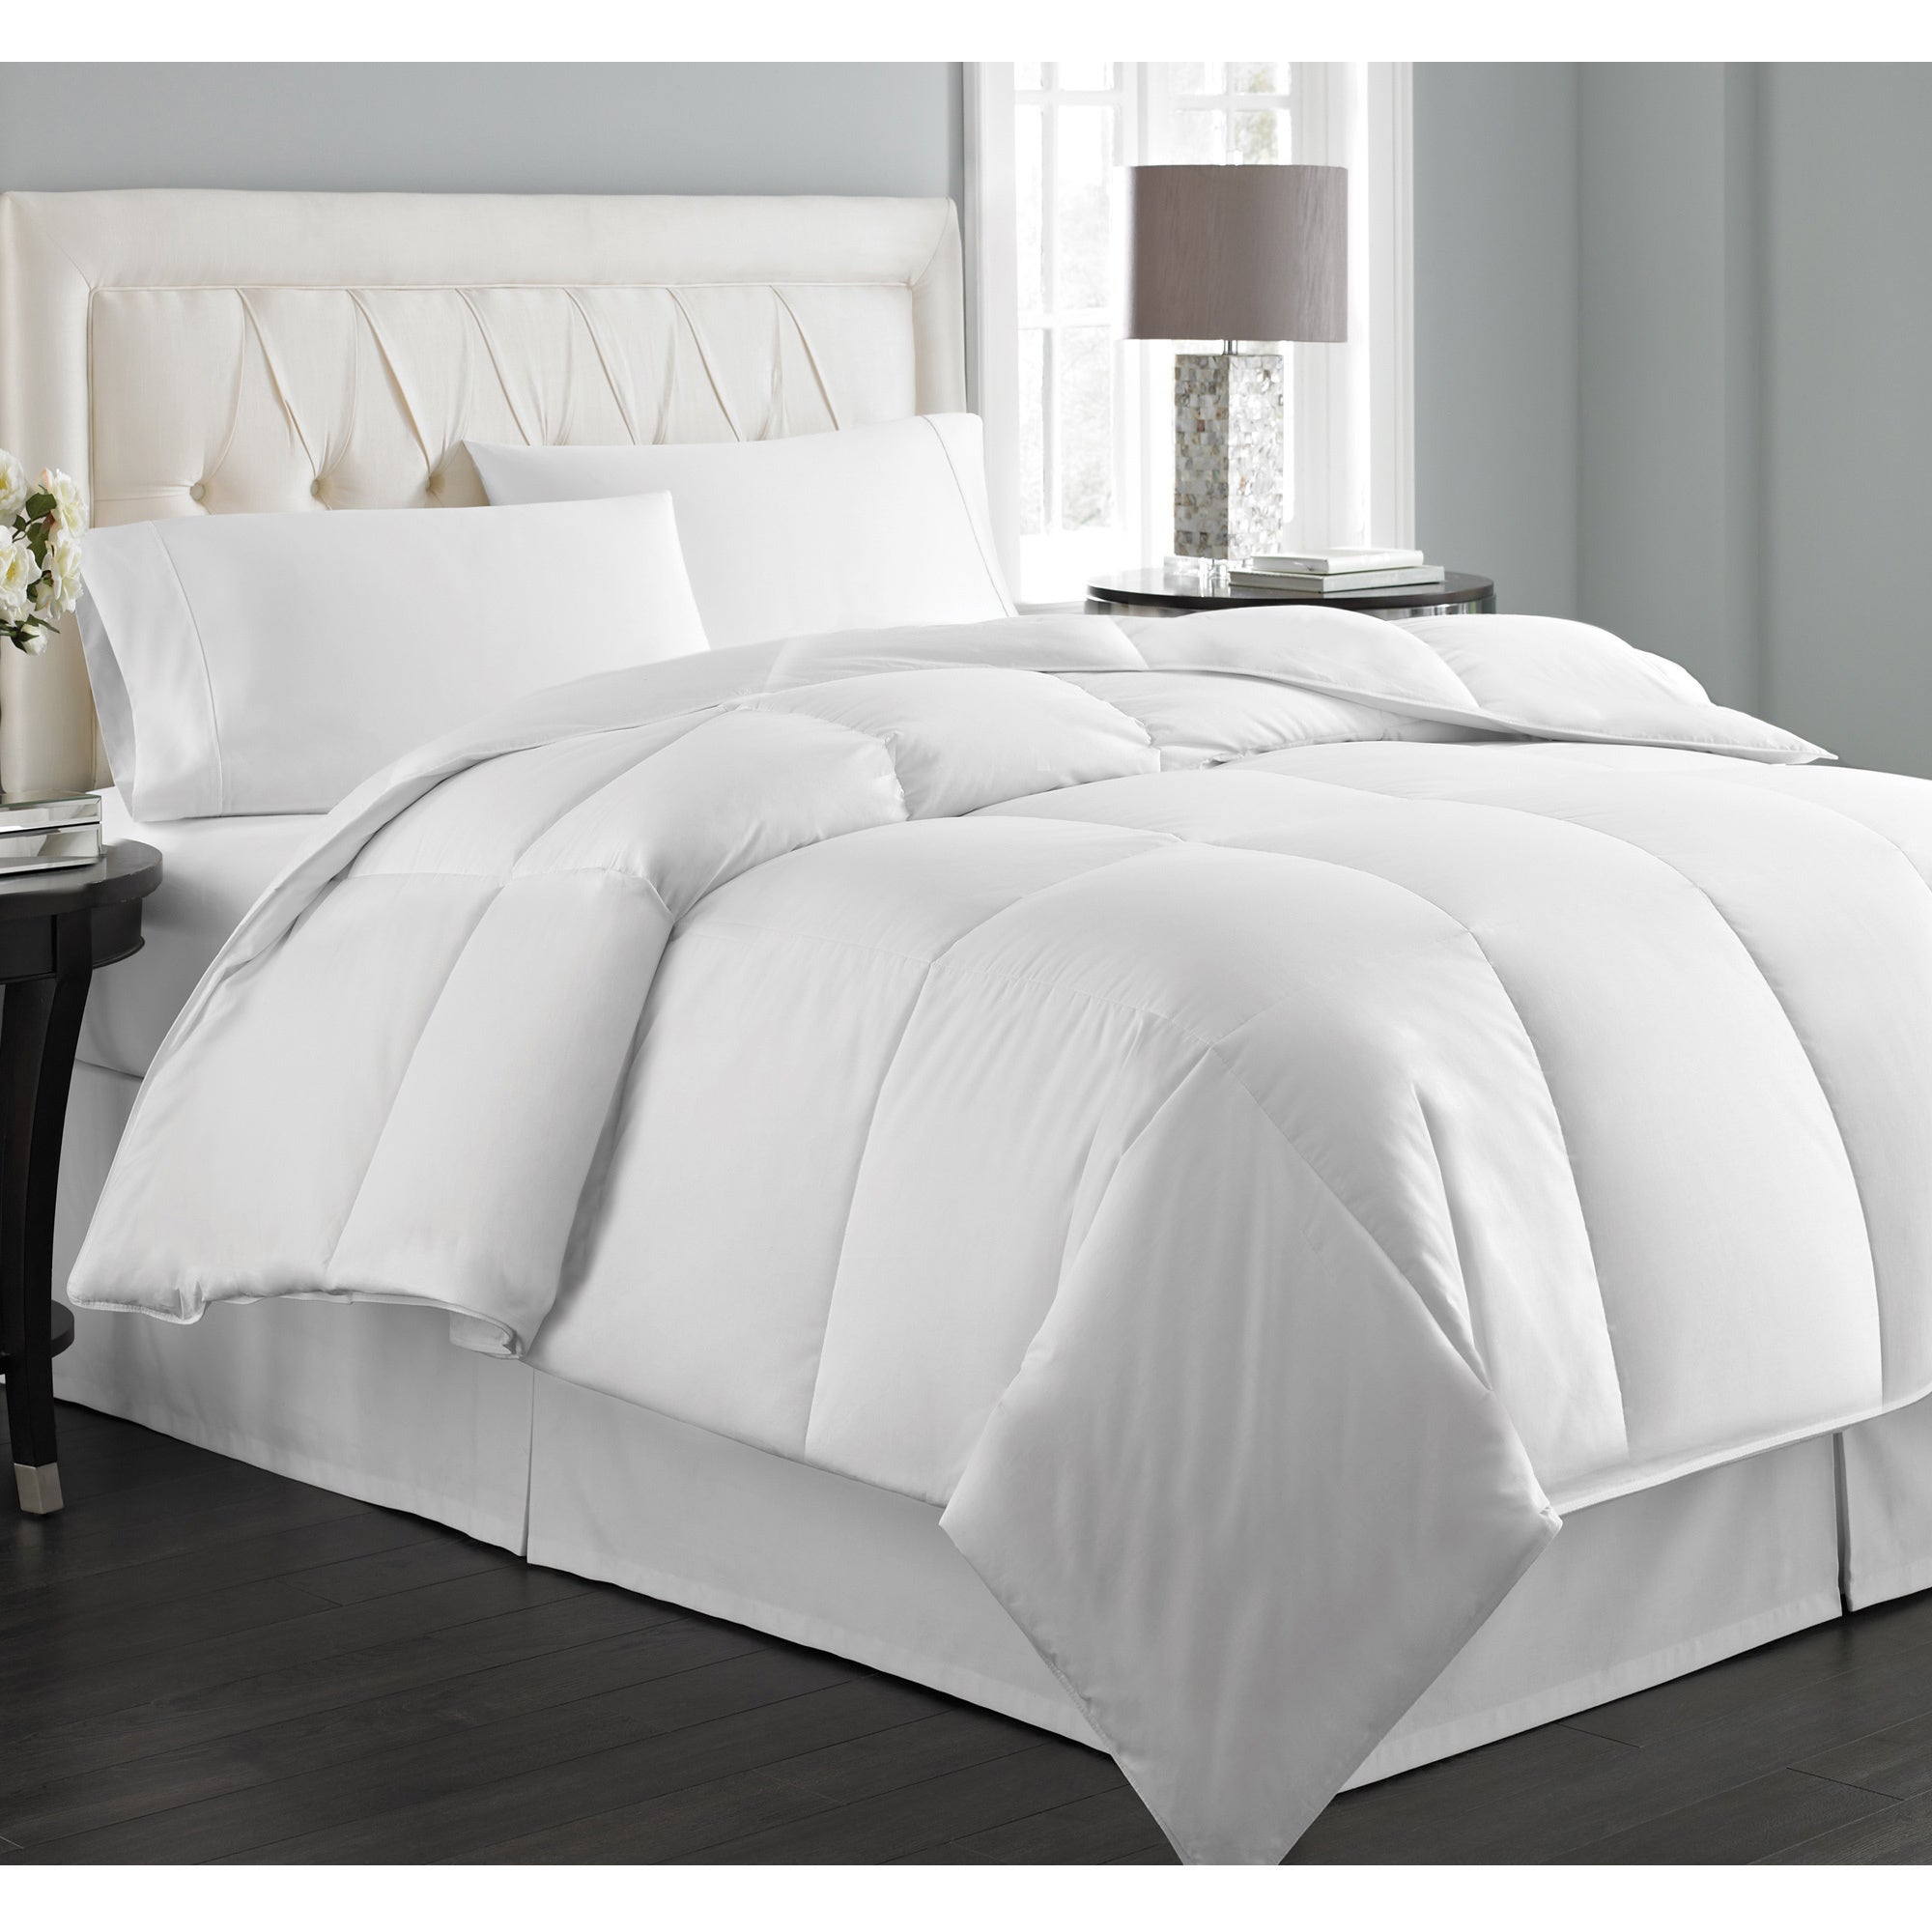 cheap comforter clearance sleep s sets a sheets number sale queen bag in bedding collection hotel white macys bed macy